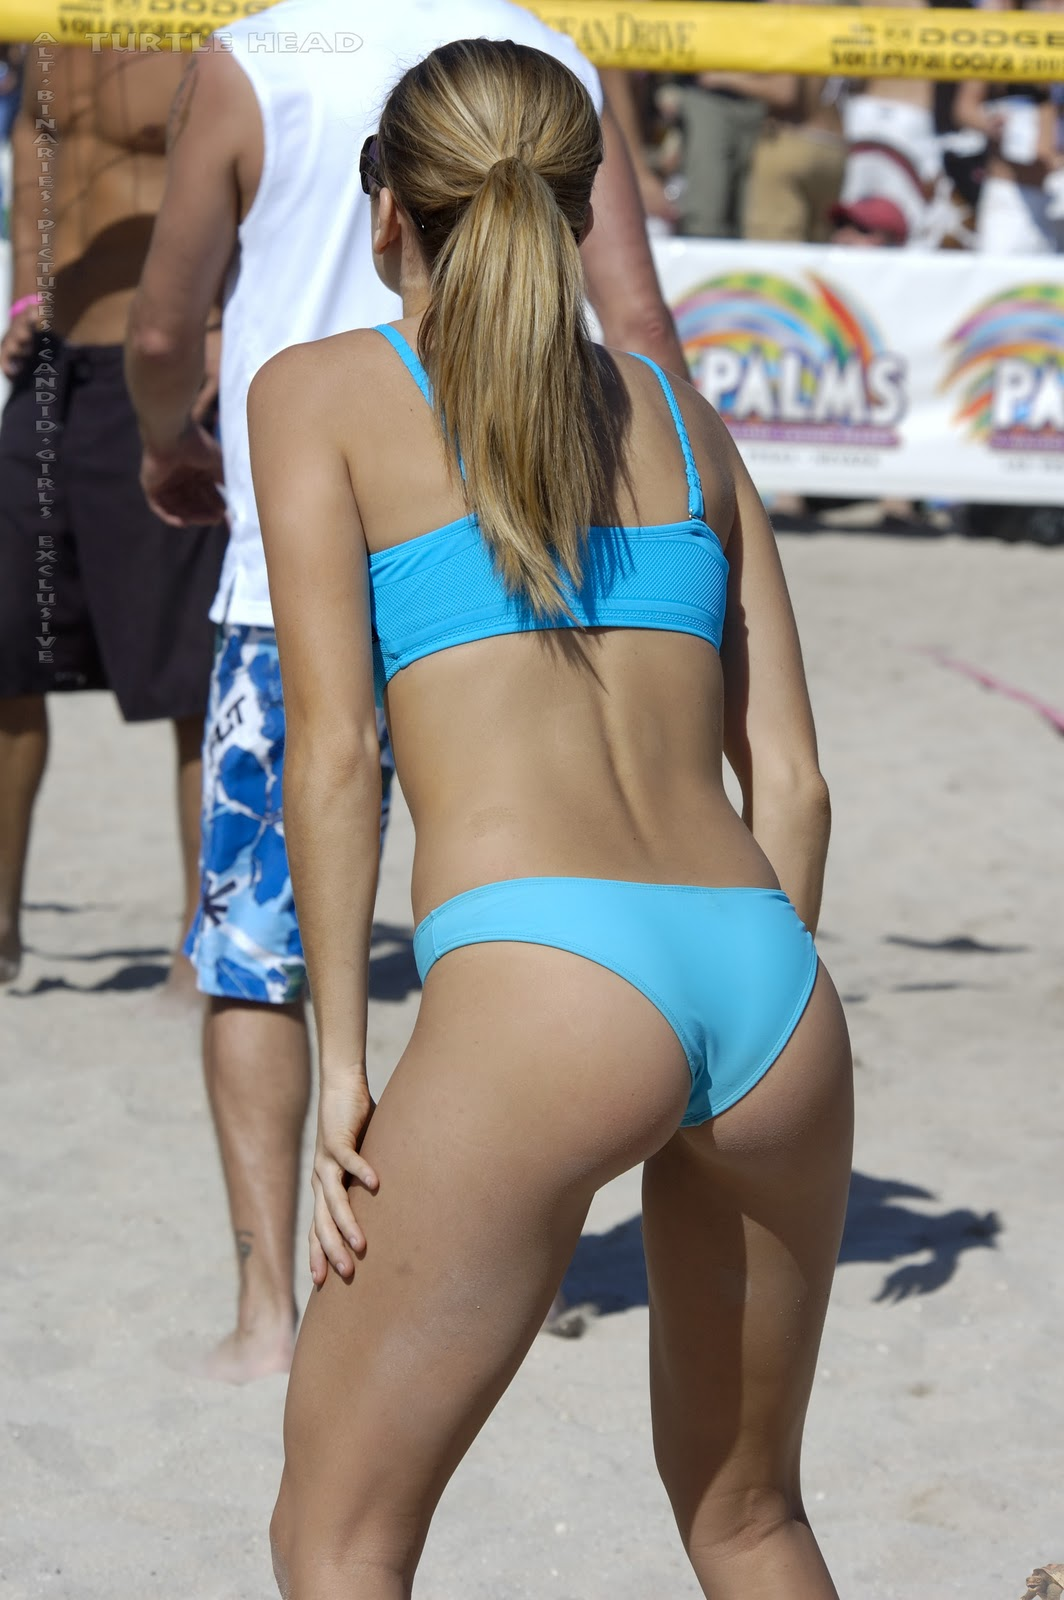 Volleyball Girls Pictures Beach volleyball girl in a nice bikini